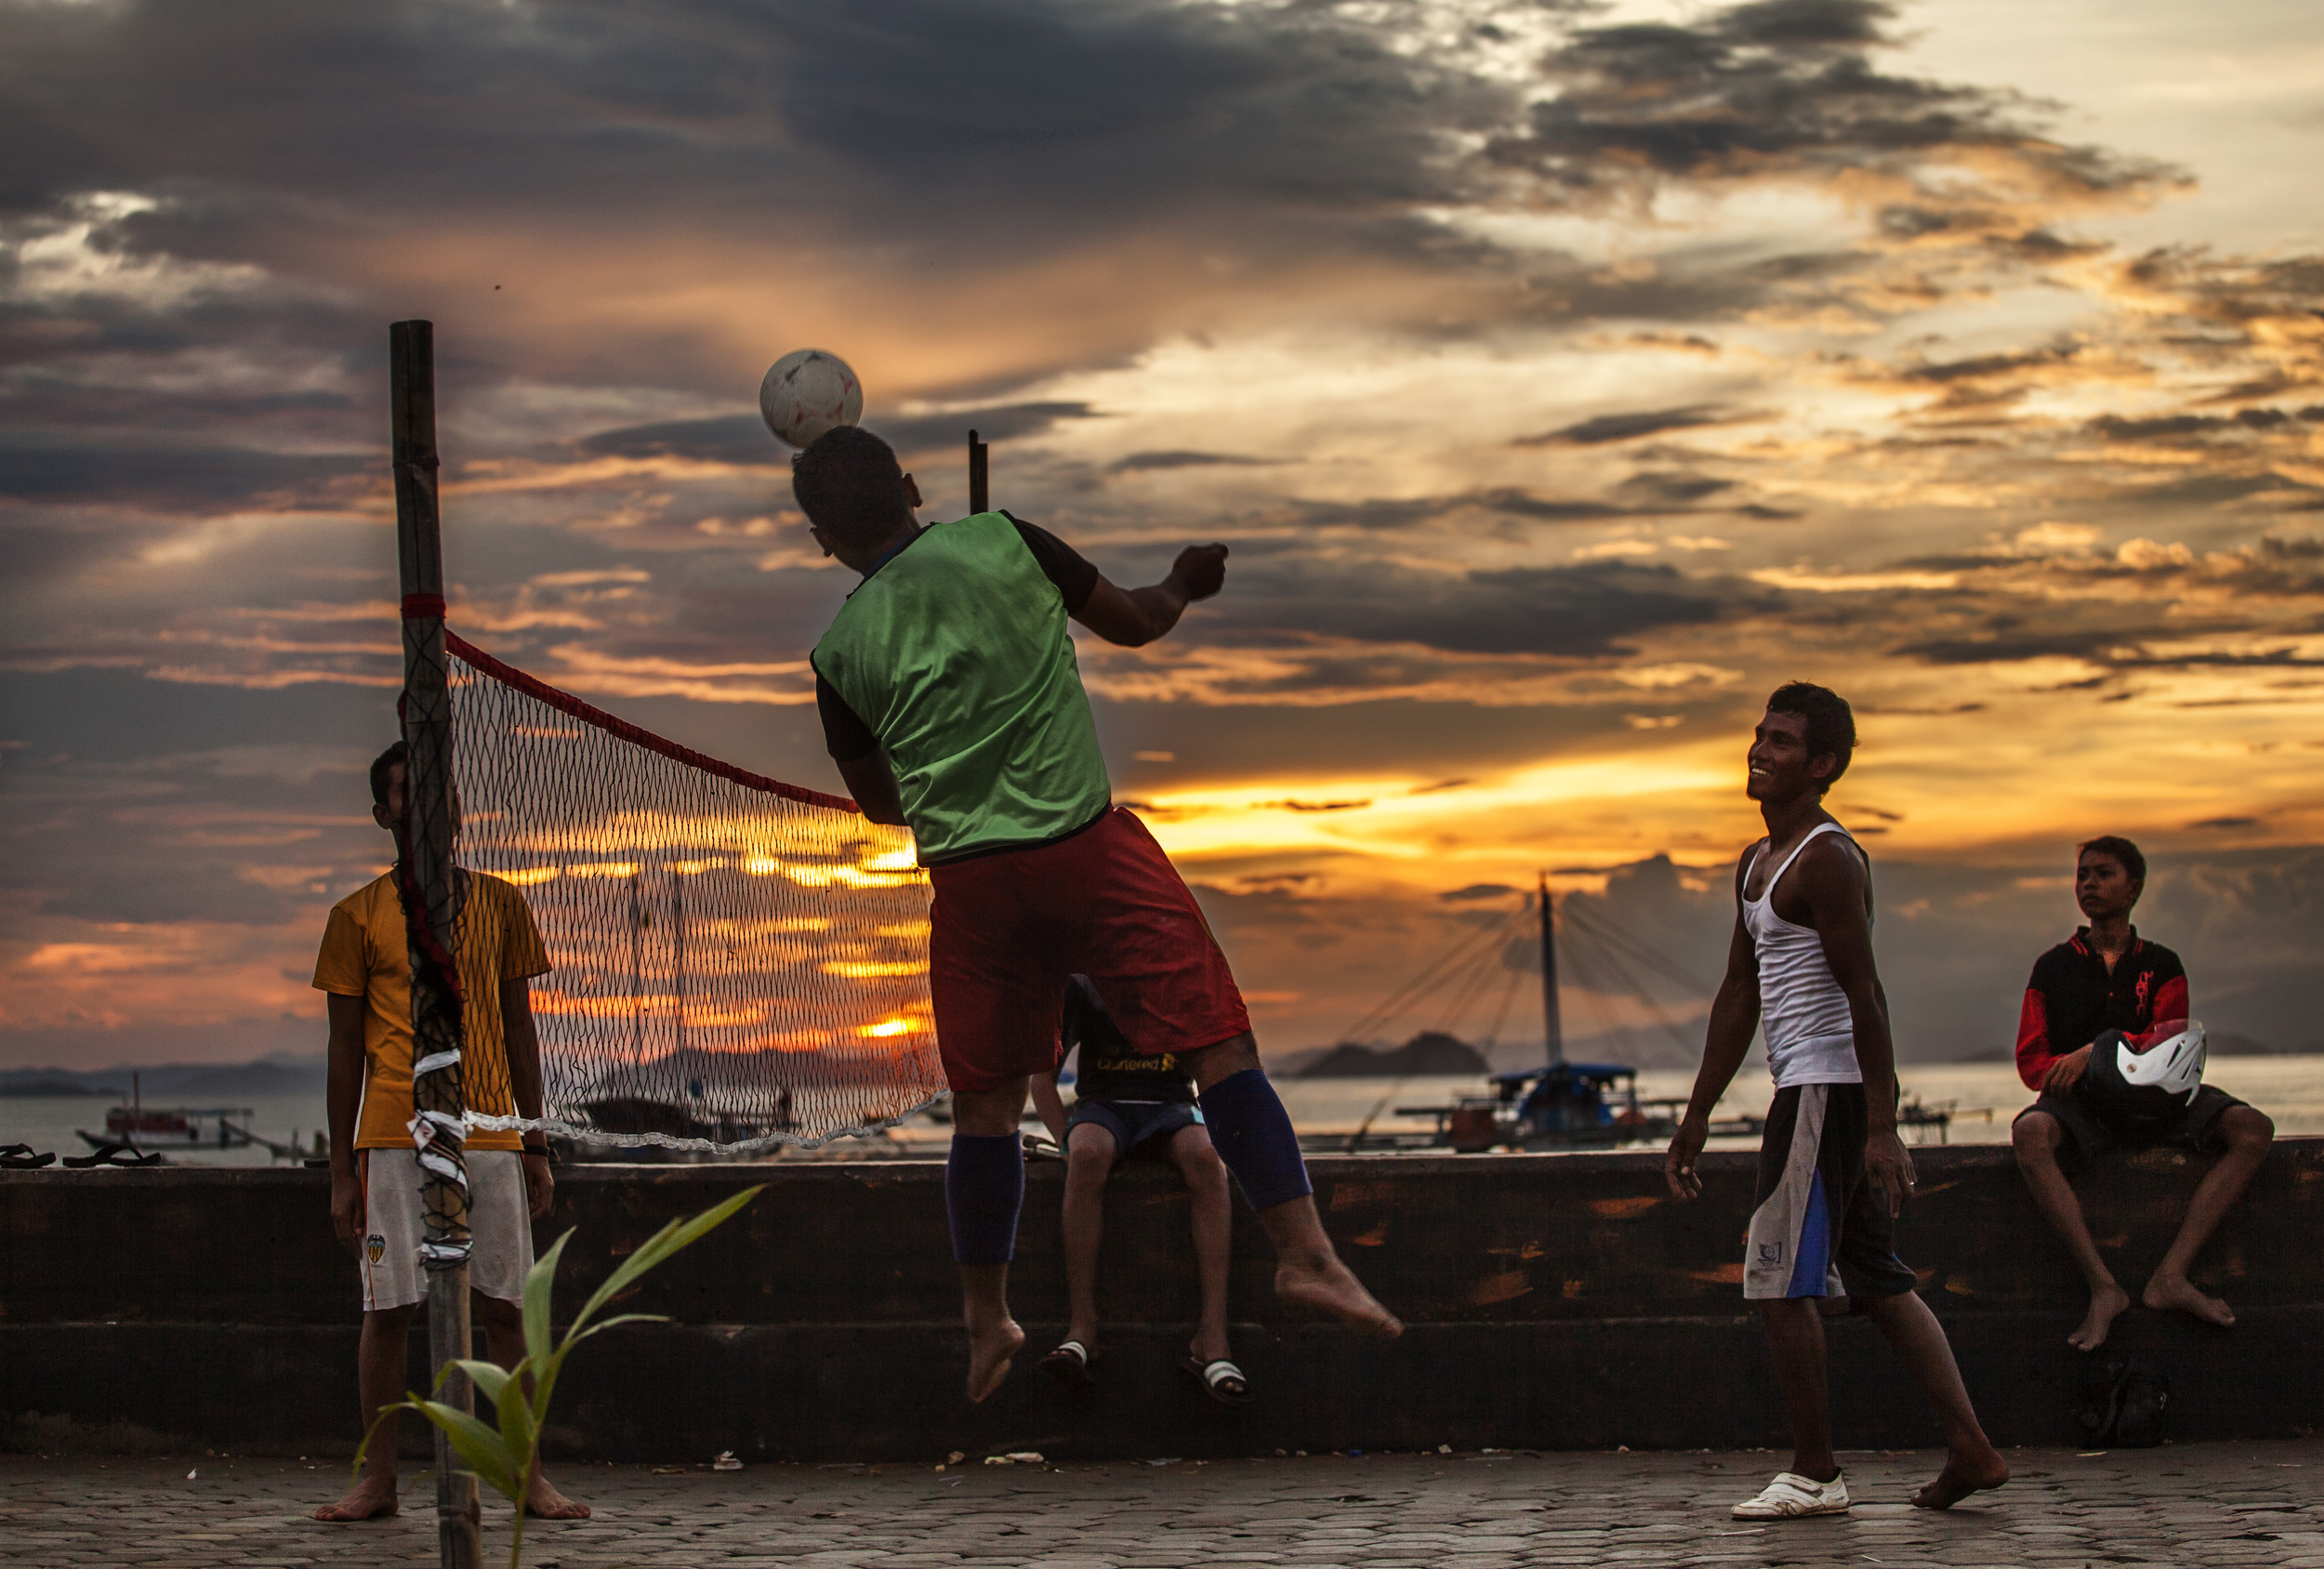 Guys playing hand and leg volleyball ( I have no idea what this game is called) in Labuan Bajo